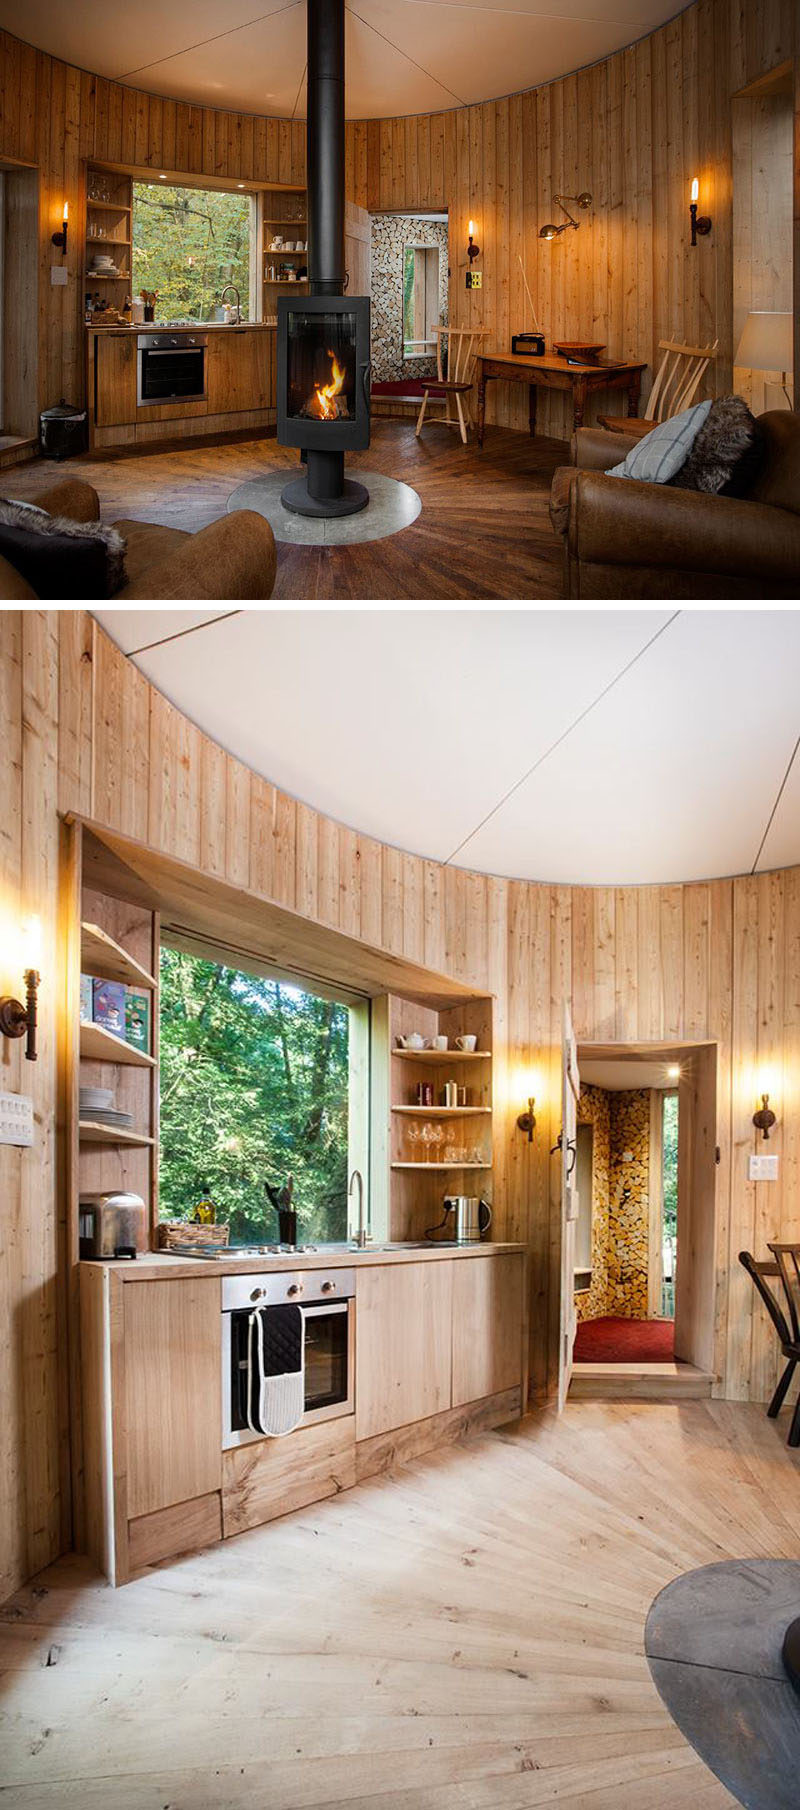 This Modern Treehouse Has A Living Area With A Central Fireplace,  Comfortable Seating And A